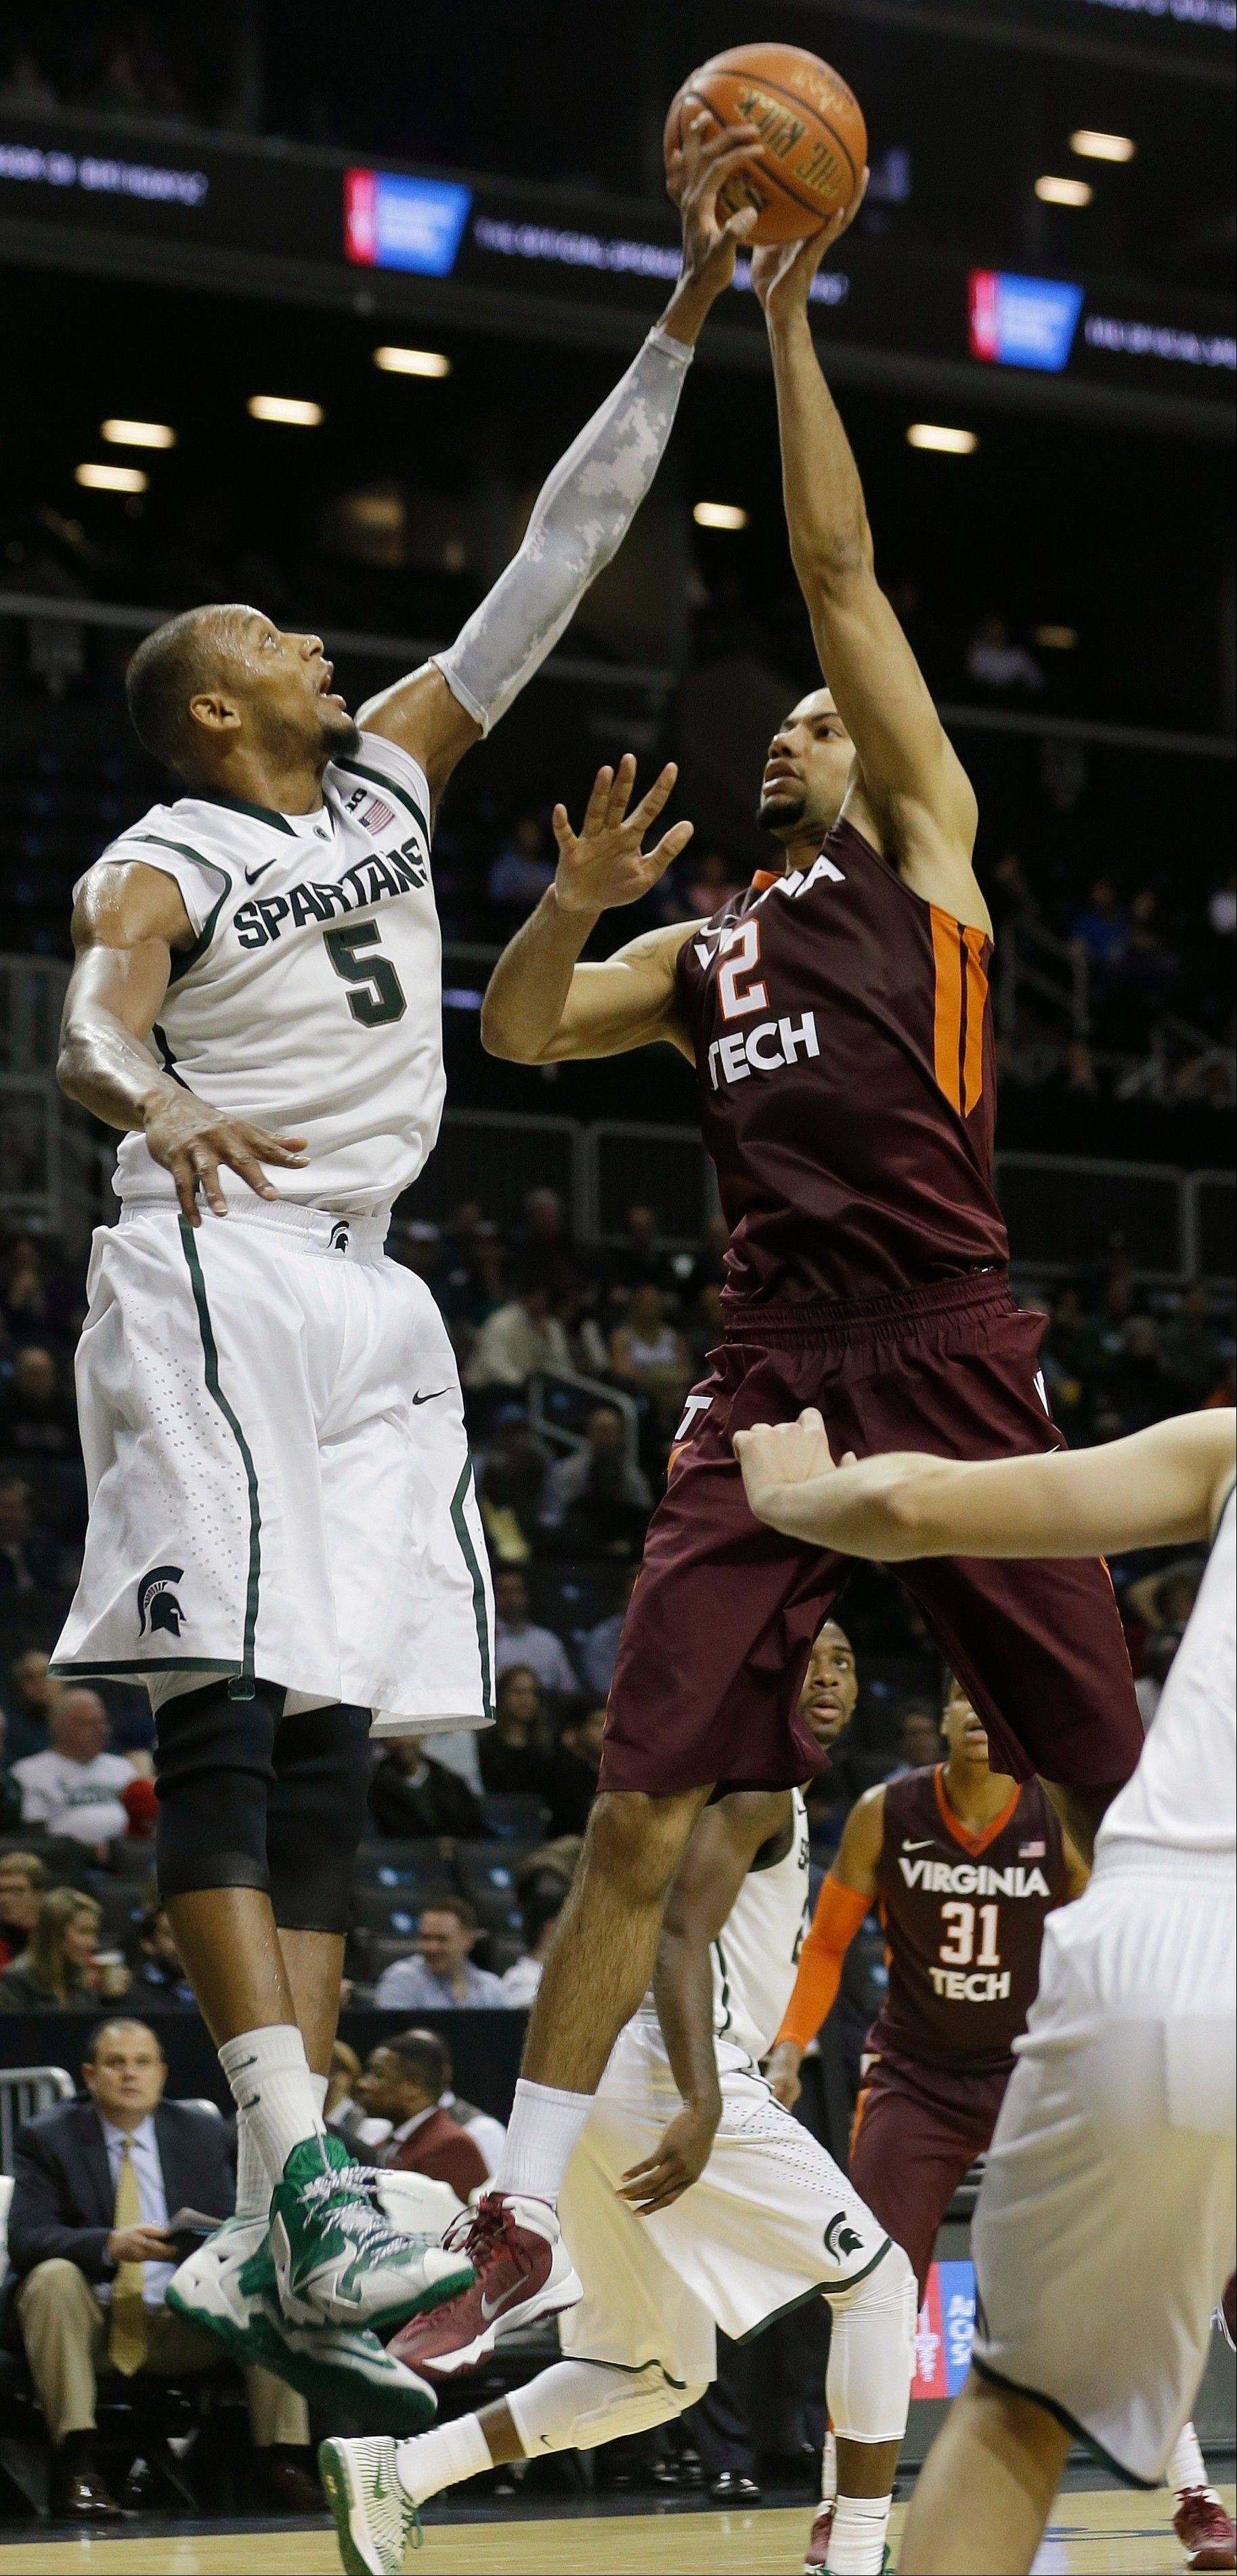 Michigan State's Adreian Payne blocks a shot by Virginia Tech's Joey Van Zegeren during the second half of a Coaches vs. Cancer Classic game on Friday in New York.